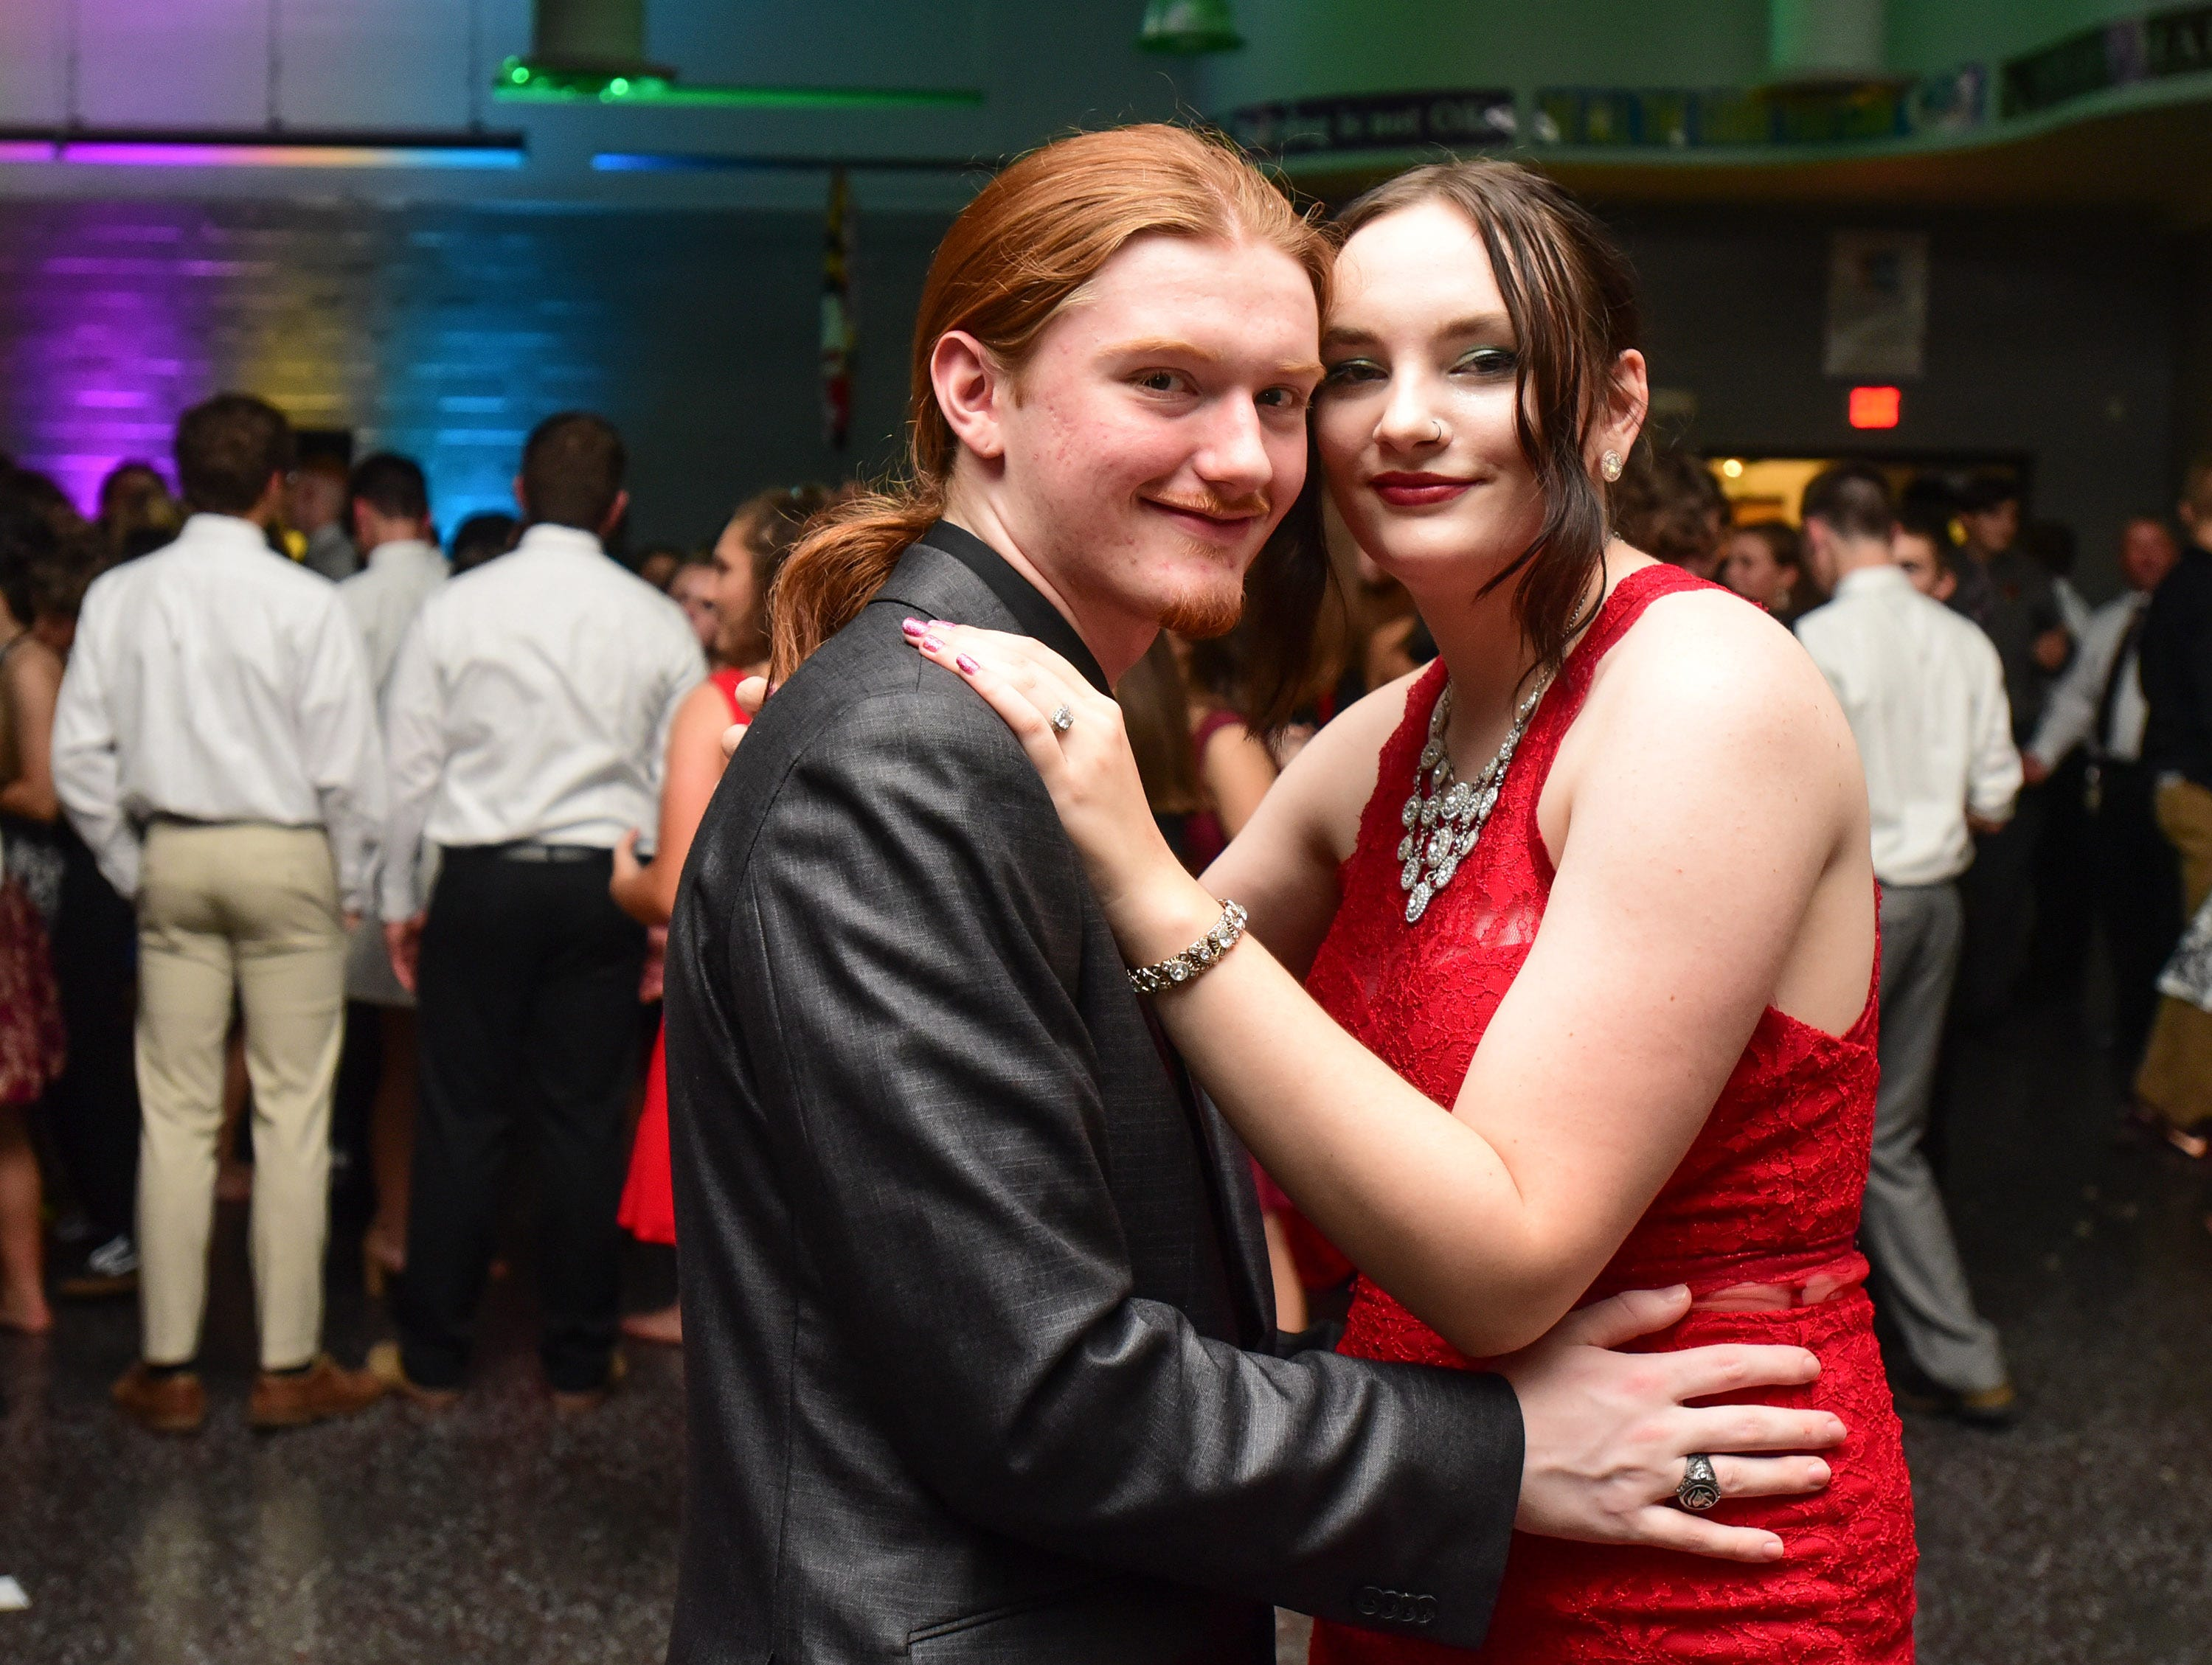 Nick Weisenburg and Logan Hastings at James M. Bennett High School Homecoming Dance Saturday night at the school in Salisbury. 780 youth attended the annual dance.